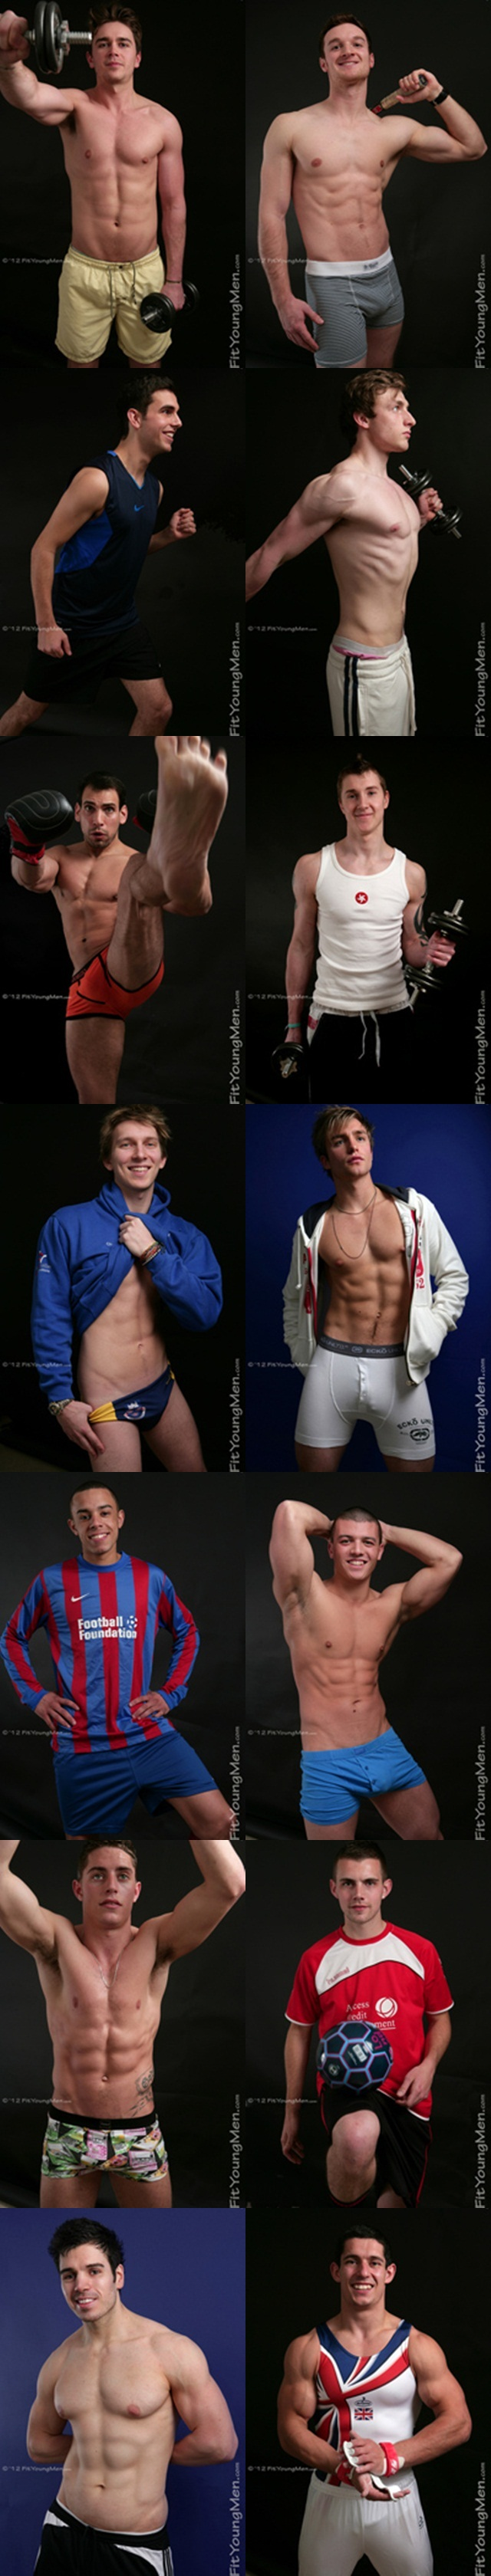 Fit young men Naked Sports Guys 1 Young nude Boy Twink Strips Naked and Strokes His Big Hard Cock photo tile - Fit Young Men - Stripped of their sports kit - Naked Athletes Gallery